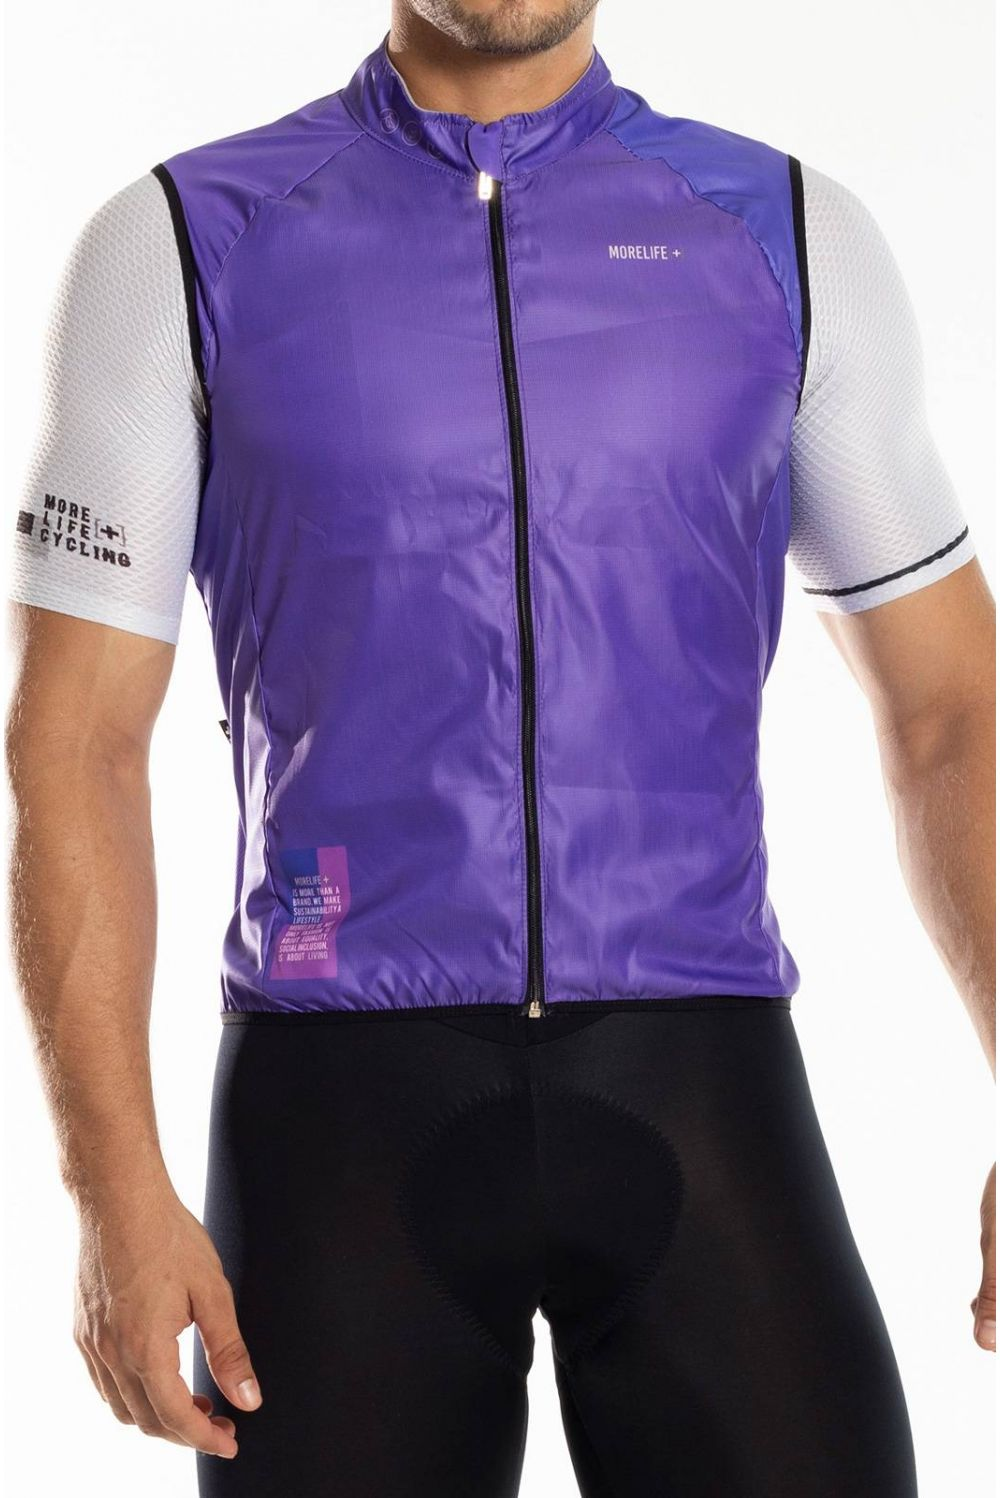 ORCHID PURPLE WINDBREAKER VEST CH003H